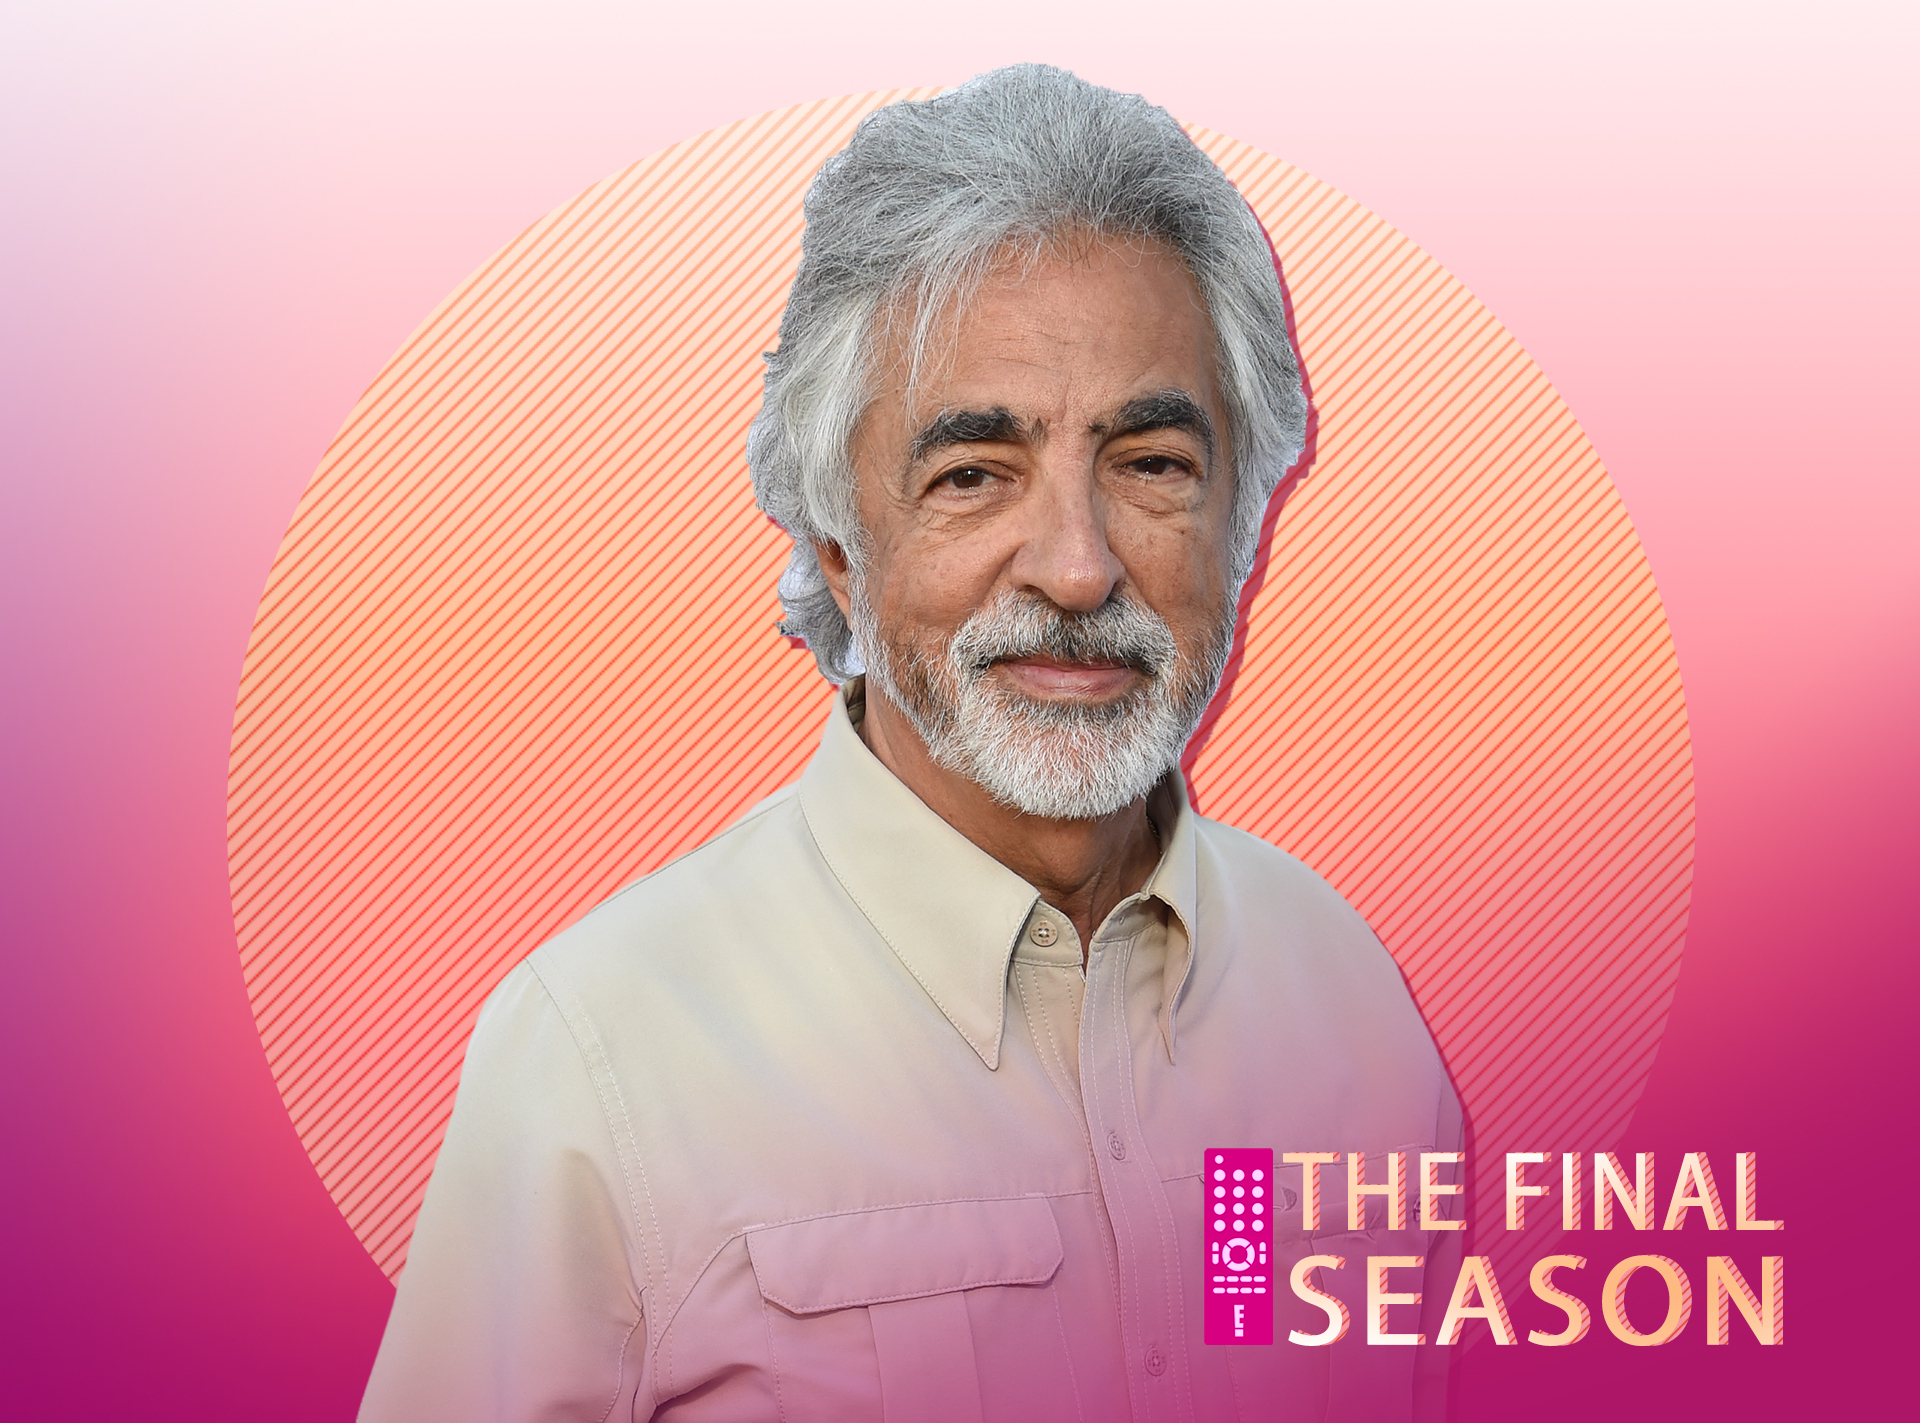 The Final Season - Criminal Minds, Joe Mantegna